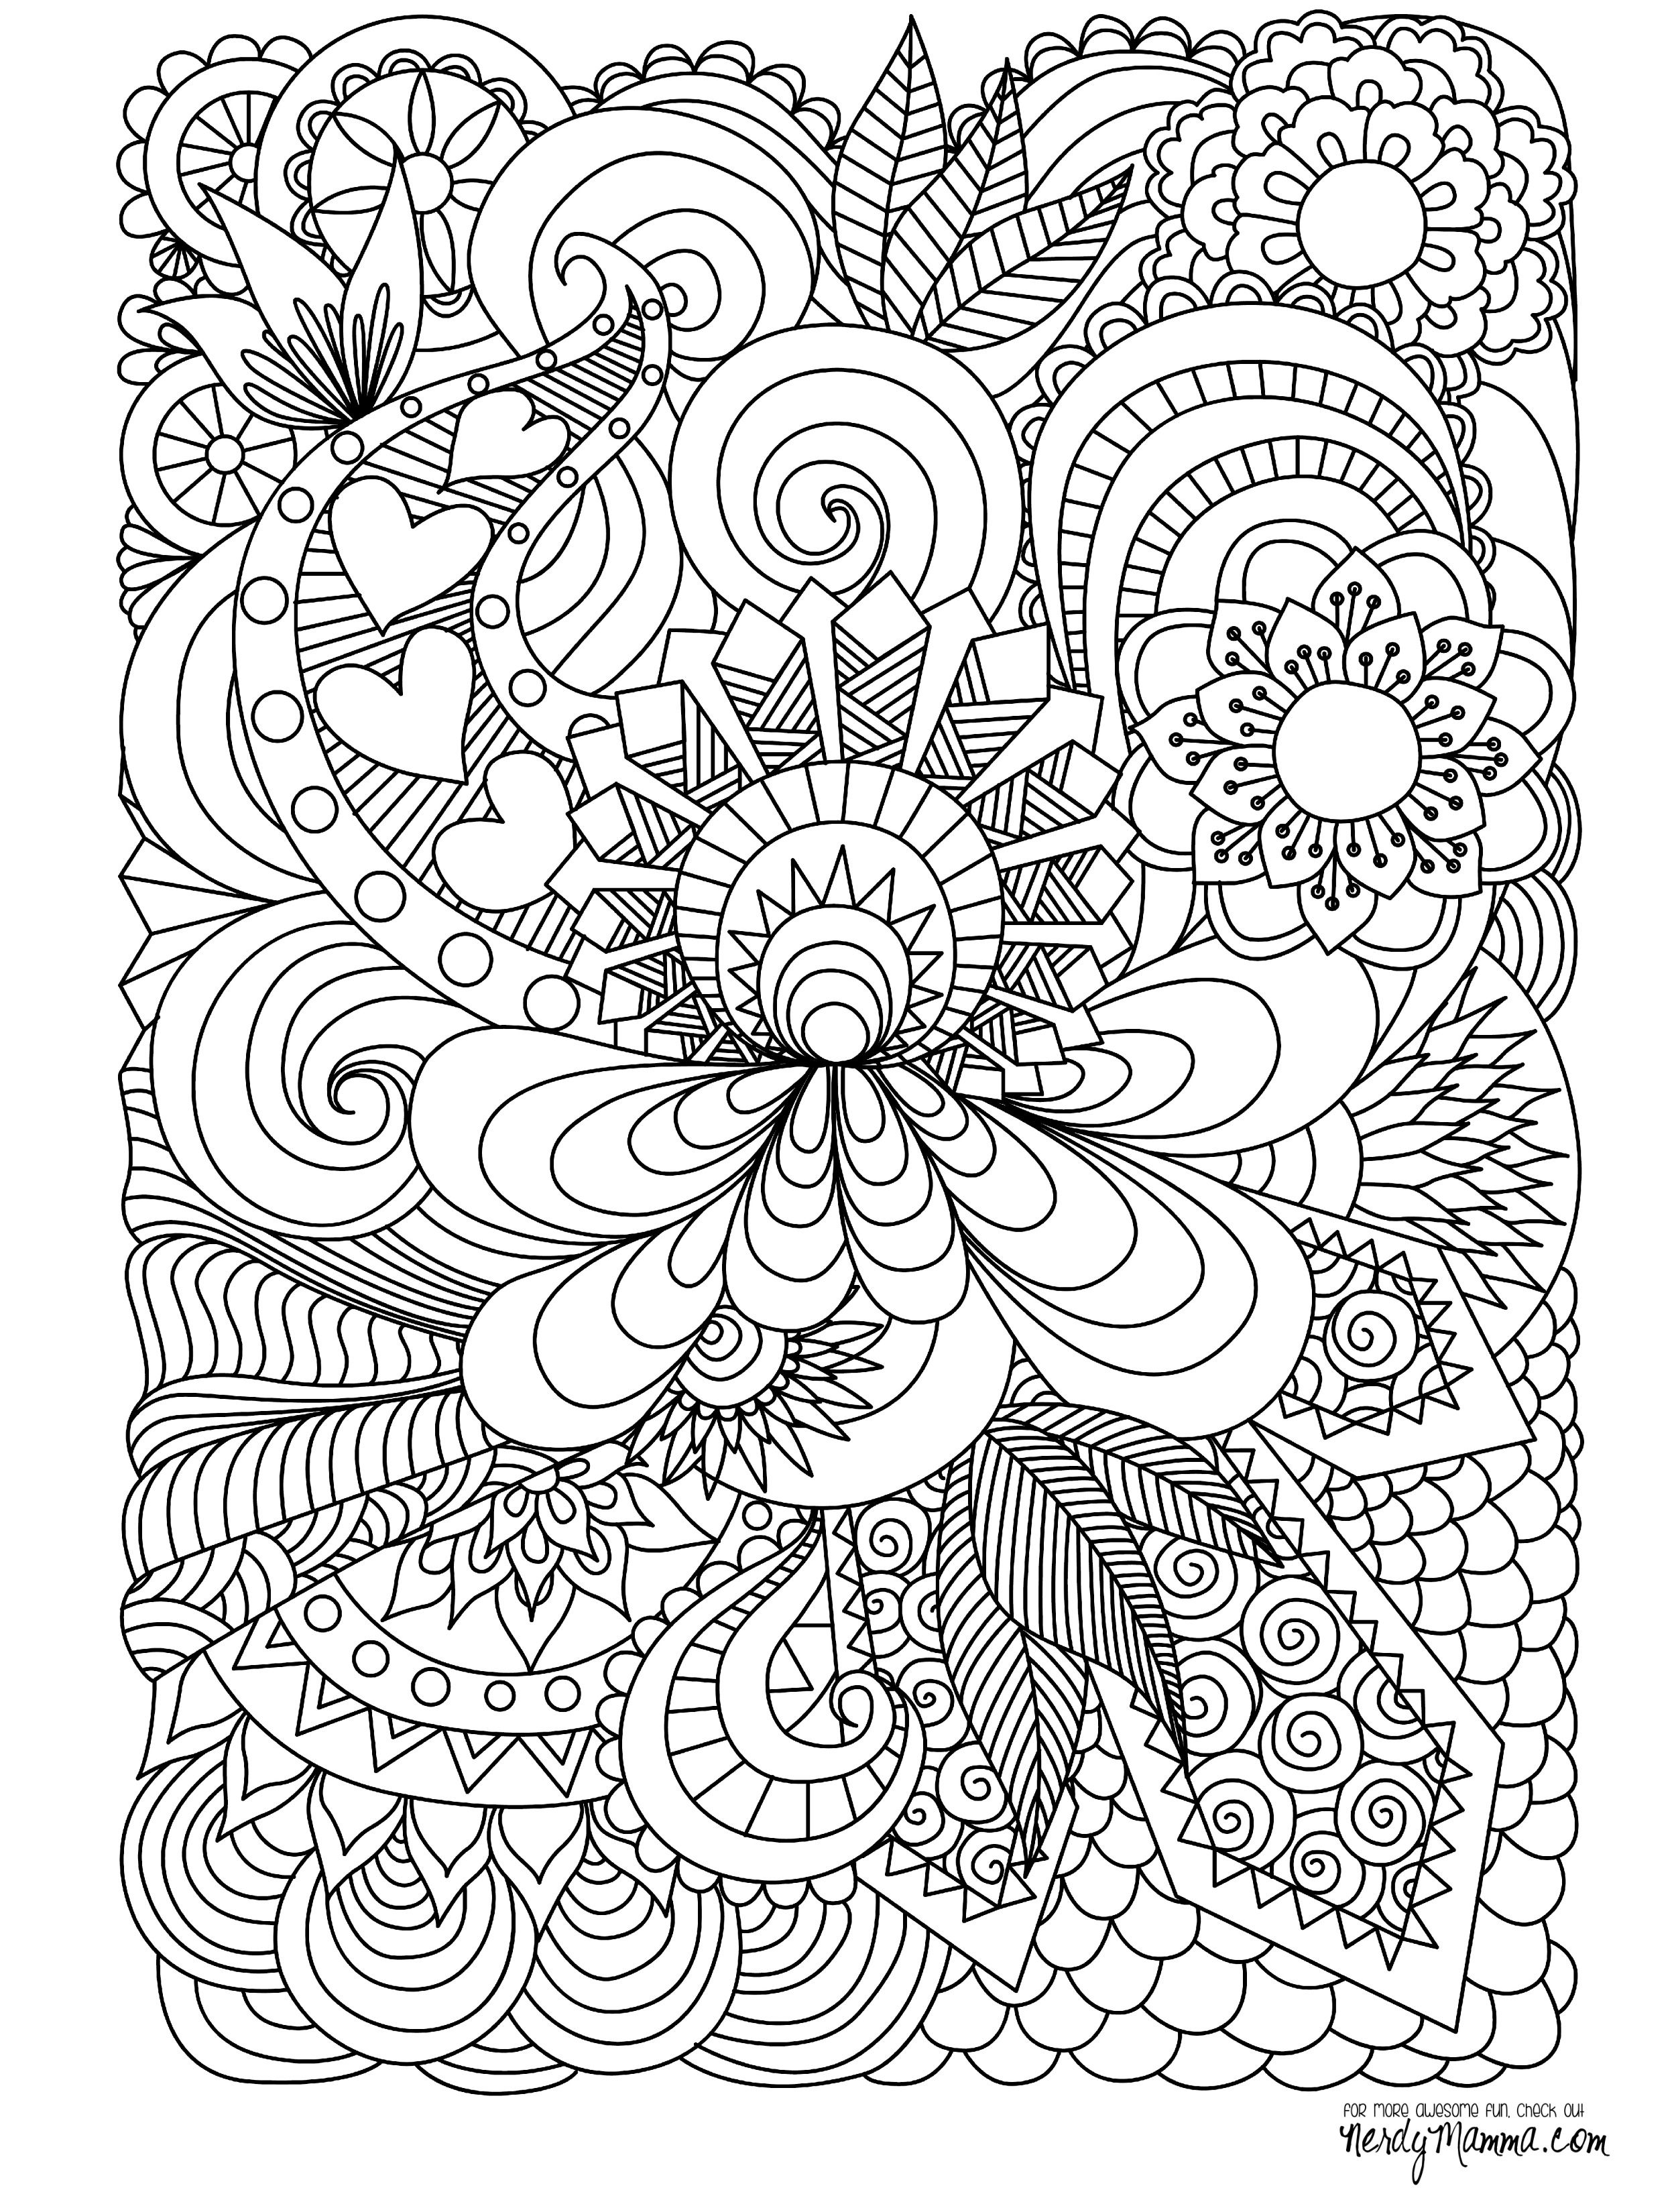 Free Printable Adult Coloring Pages creatividad Pinterest